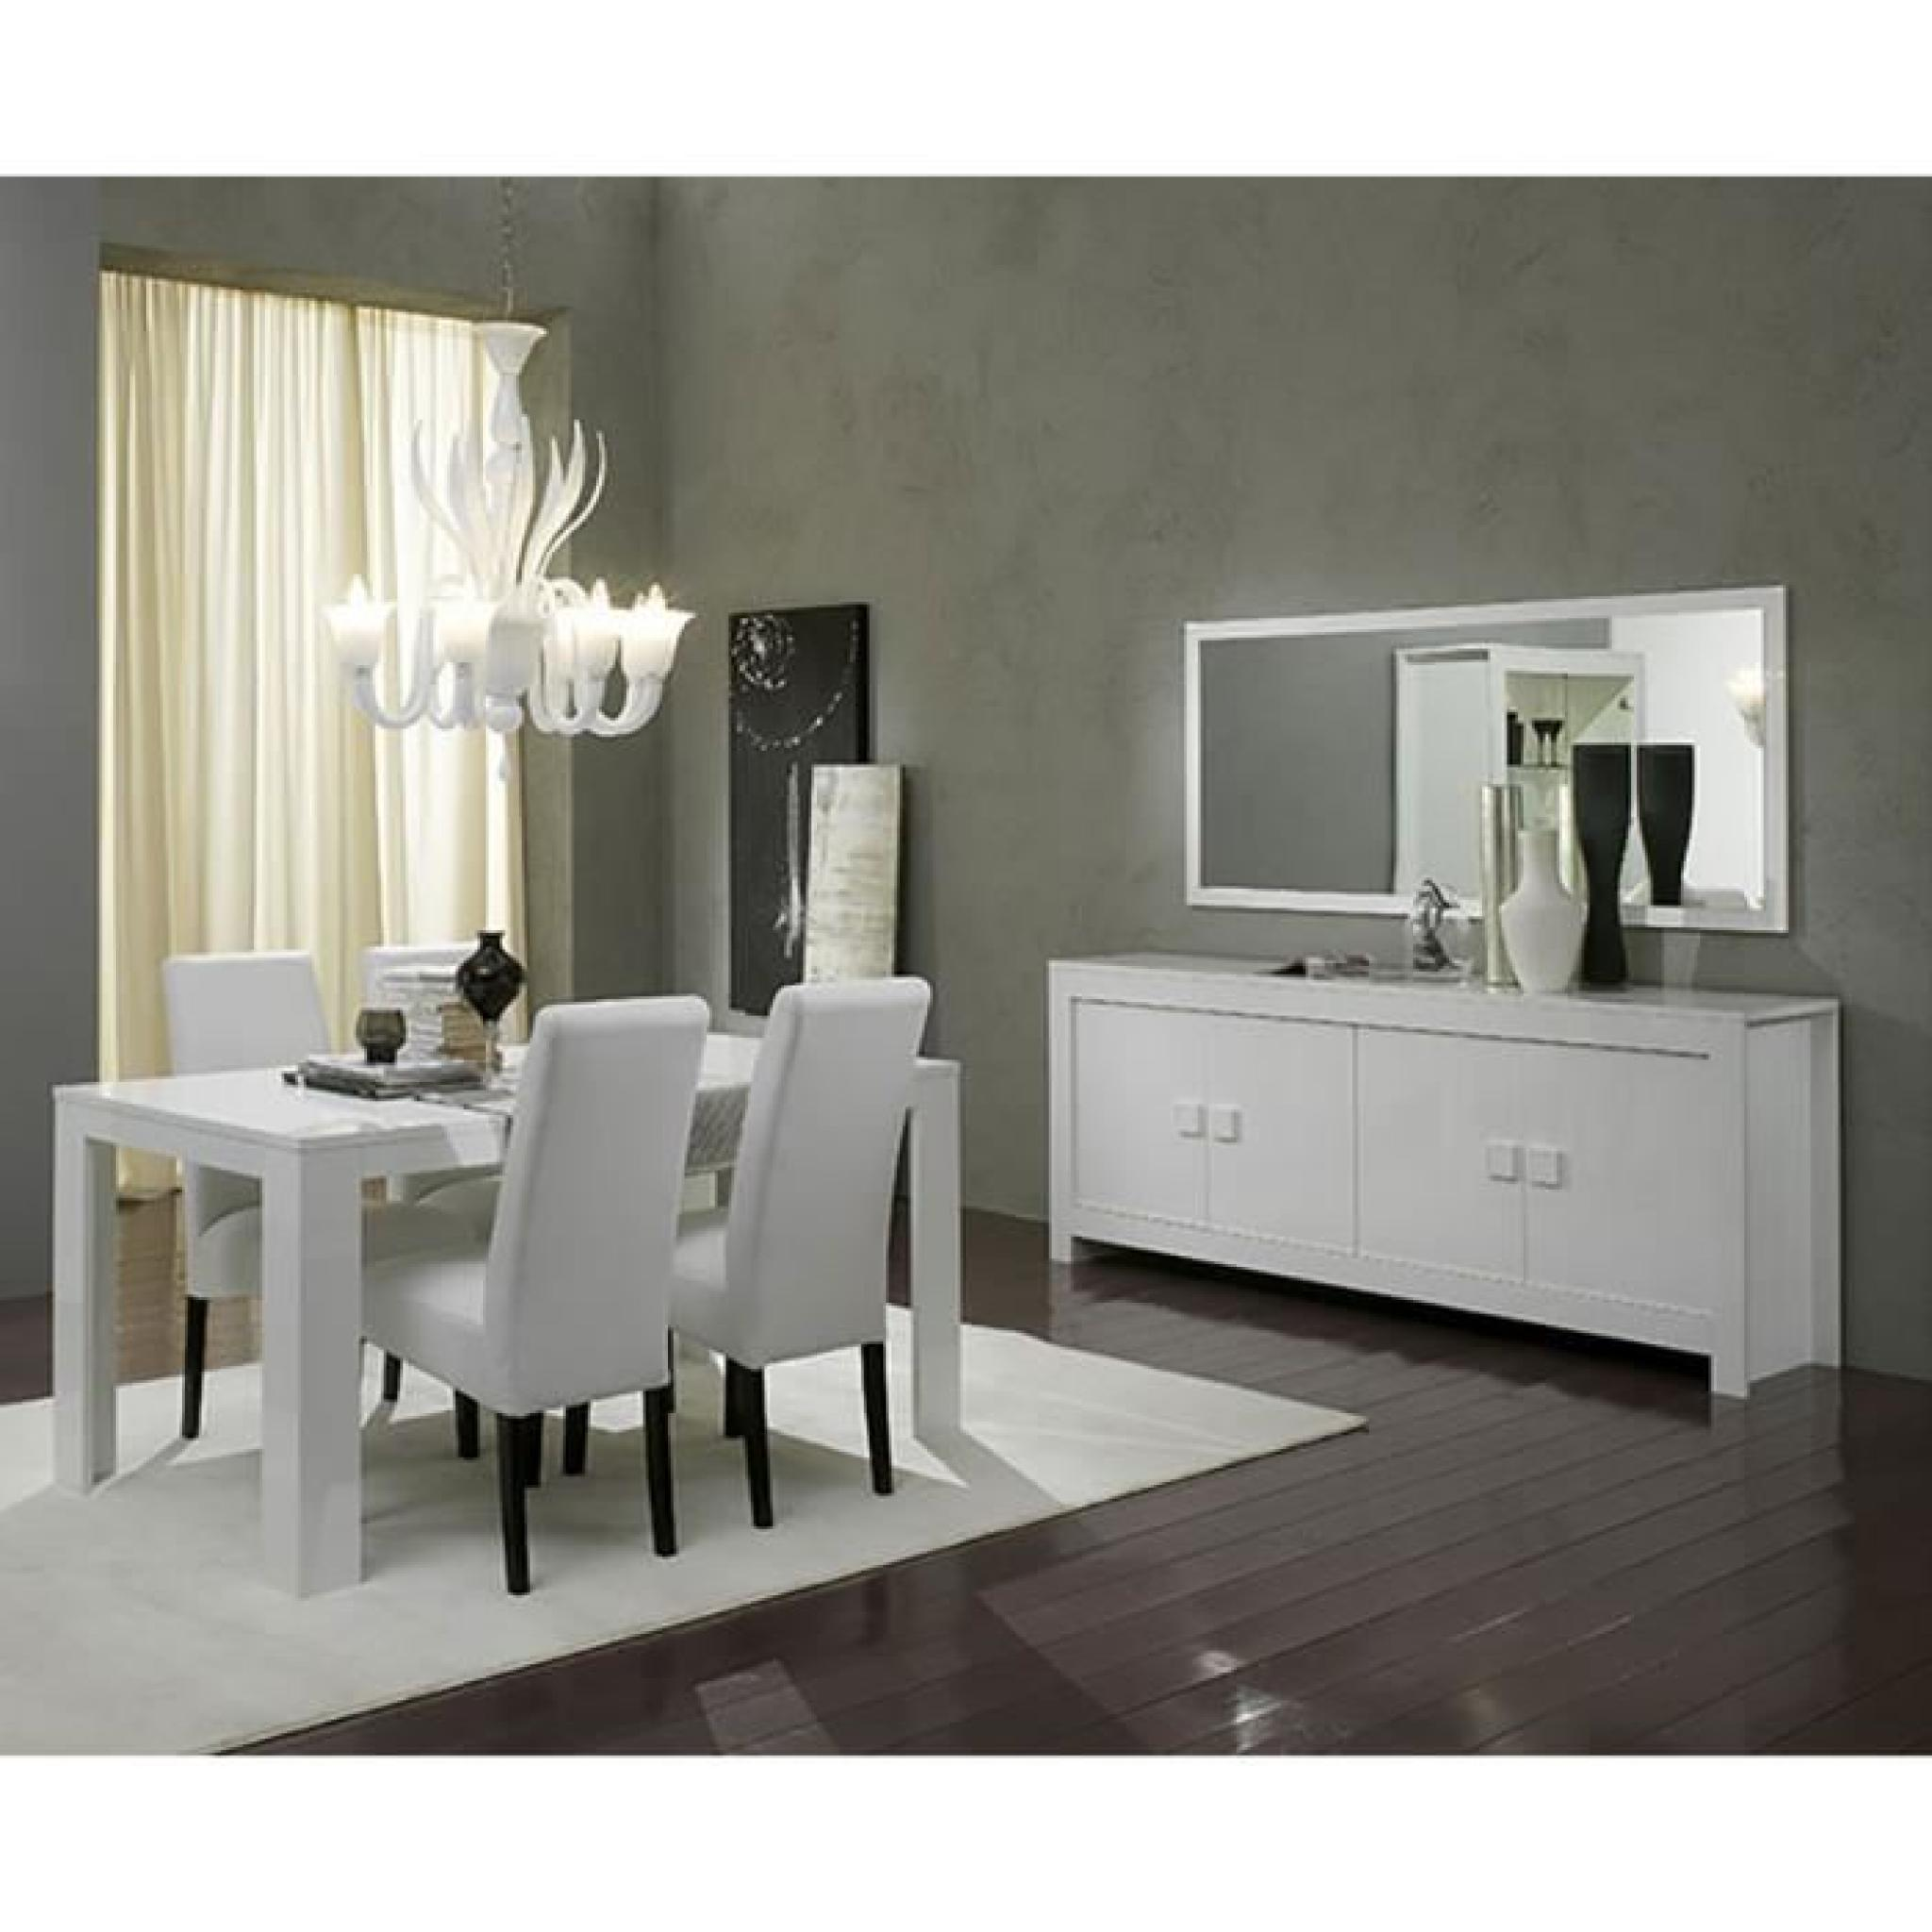 Salle manger compl te blanc laqu design tamara 2 for Ensemble buffet table manger